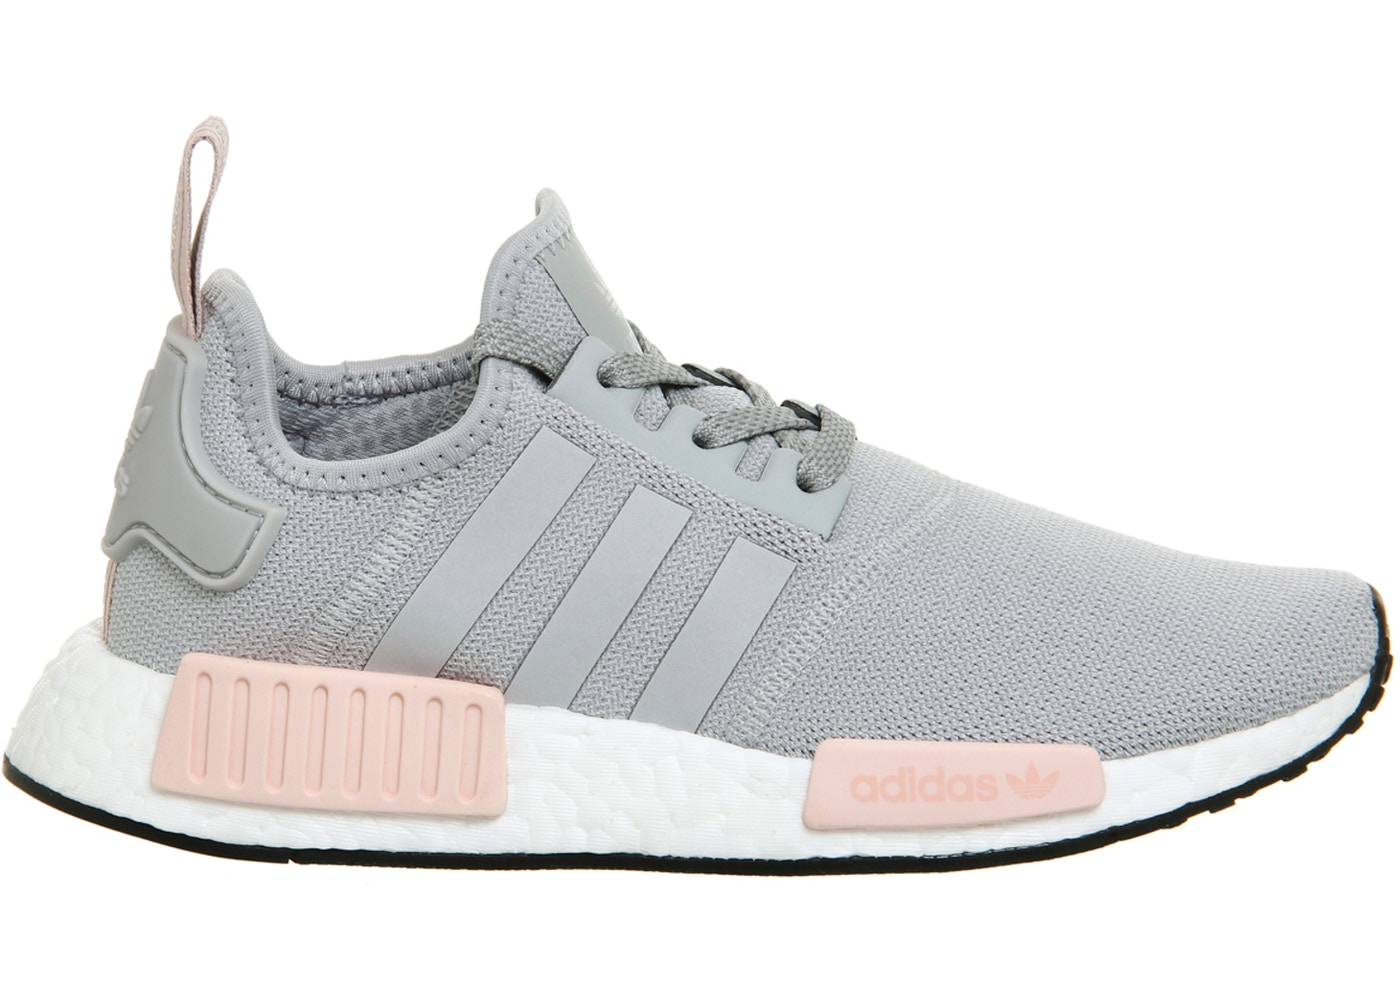 96b30e21c Sell. or Ask. Size  5W. View All Bids. adidas NMD R1 Clear Onix Vapour Pink  ...